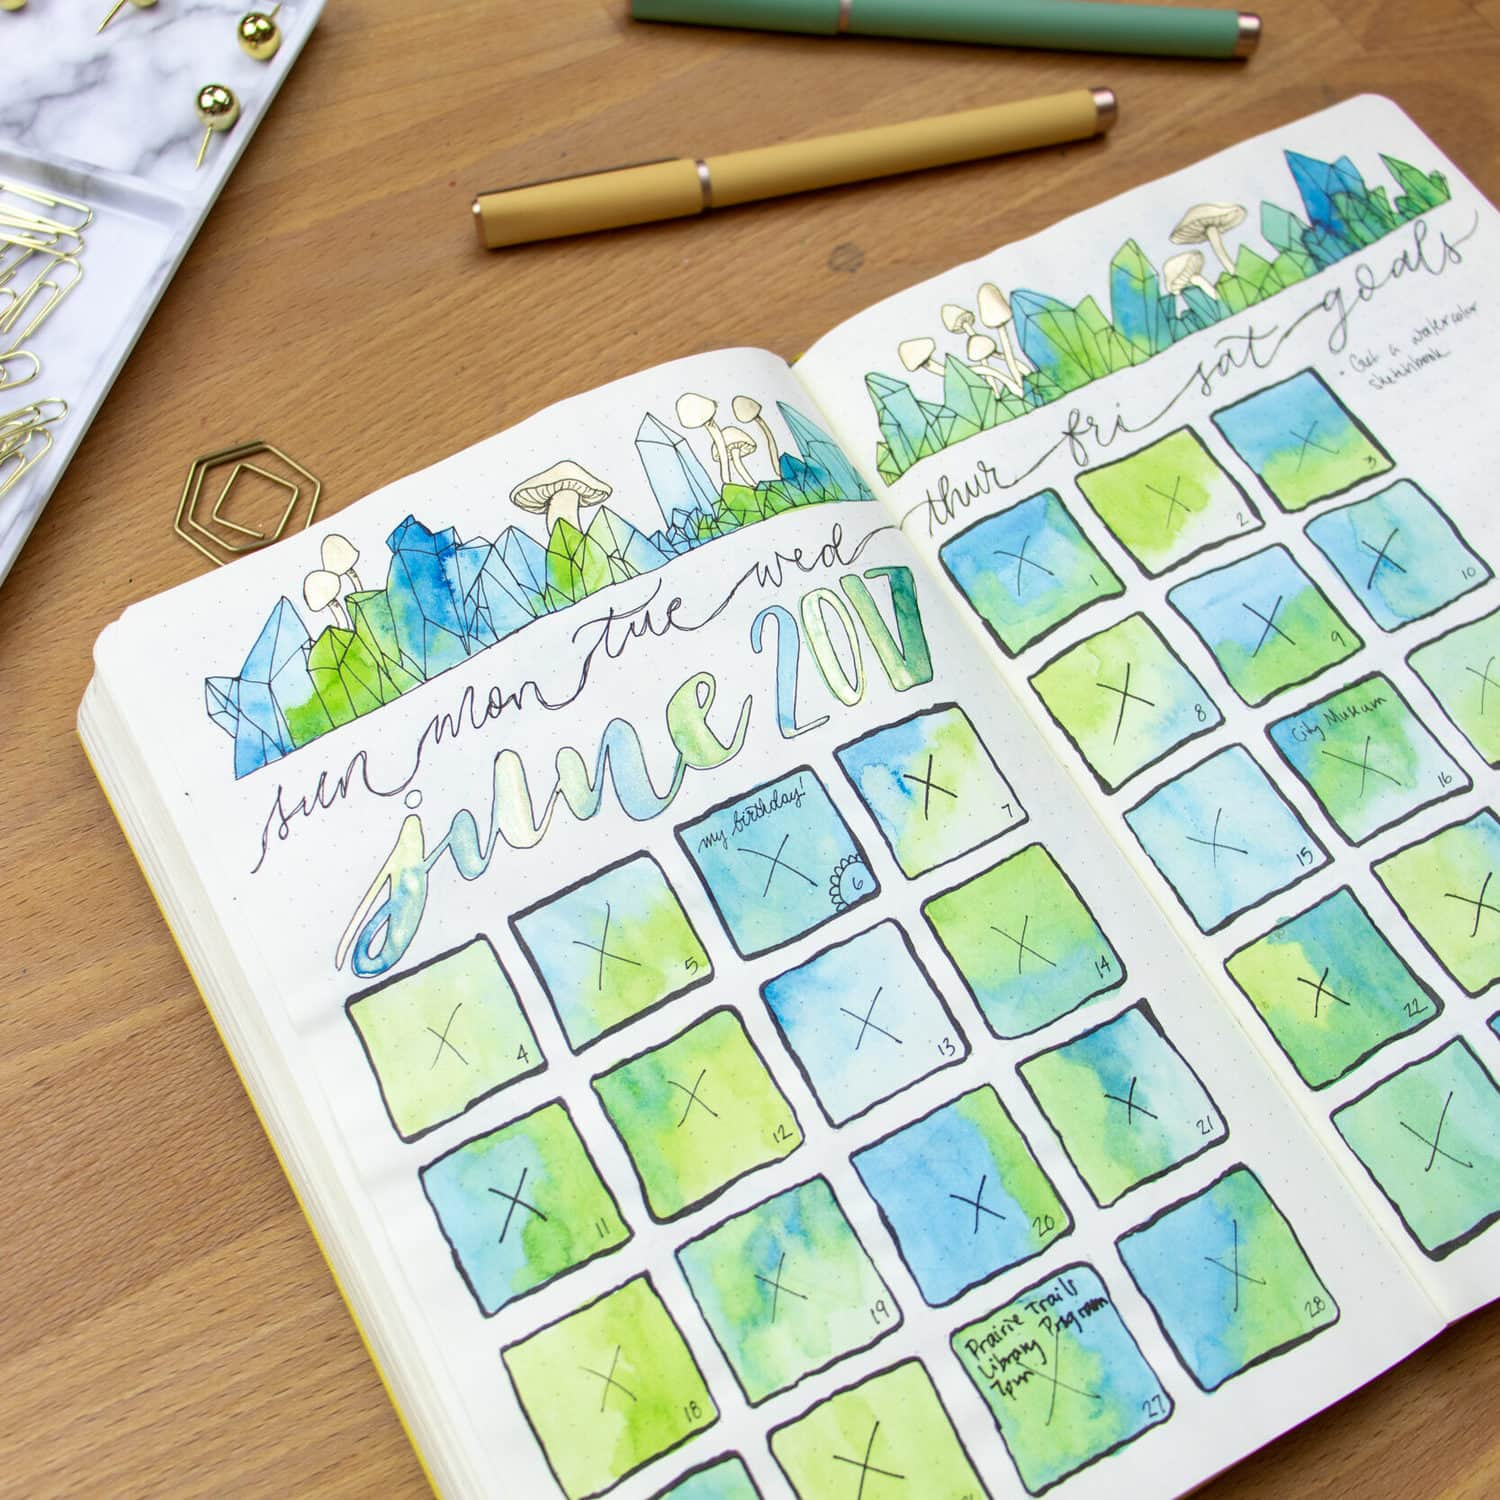 Open journal with watercolored blue and green calendar sitting on desk.